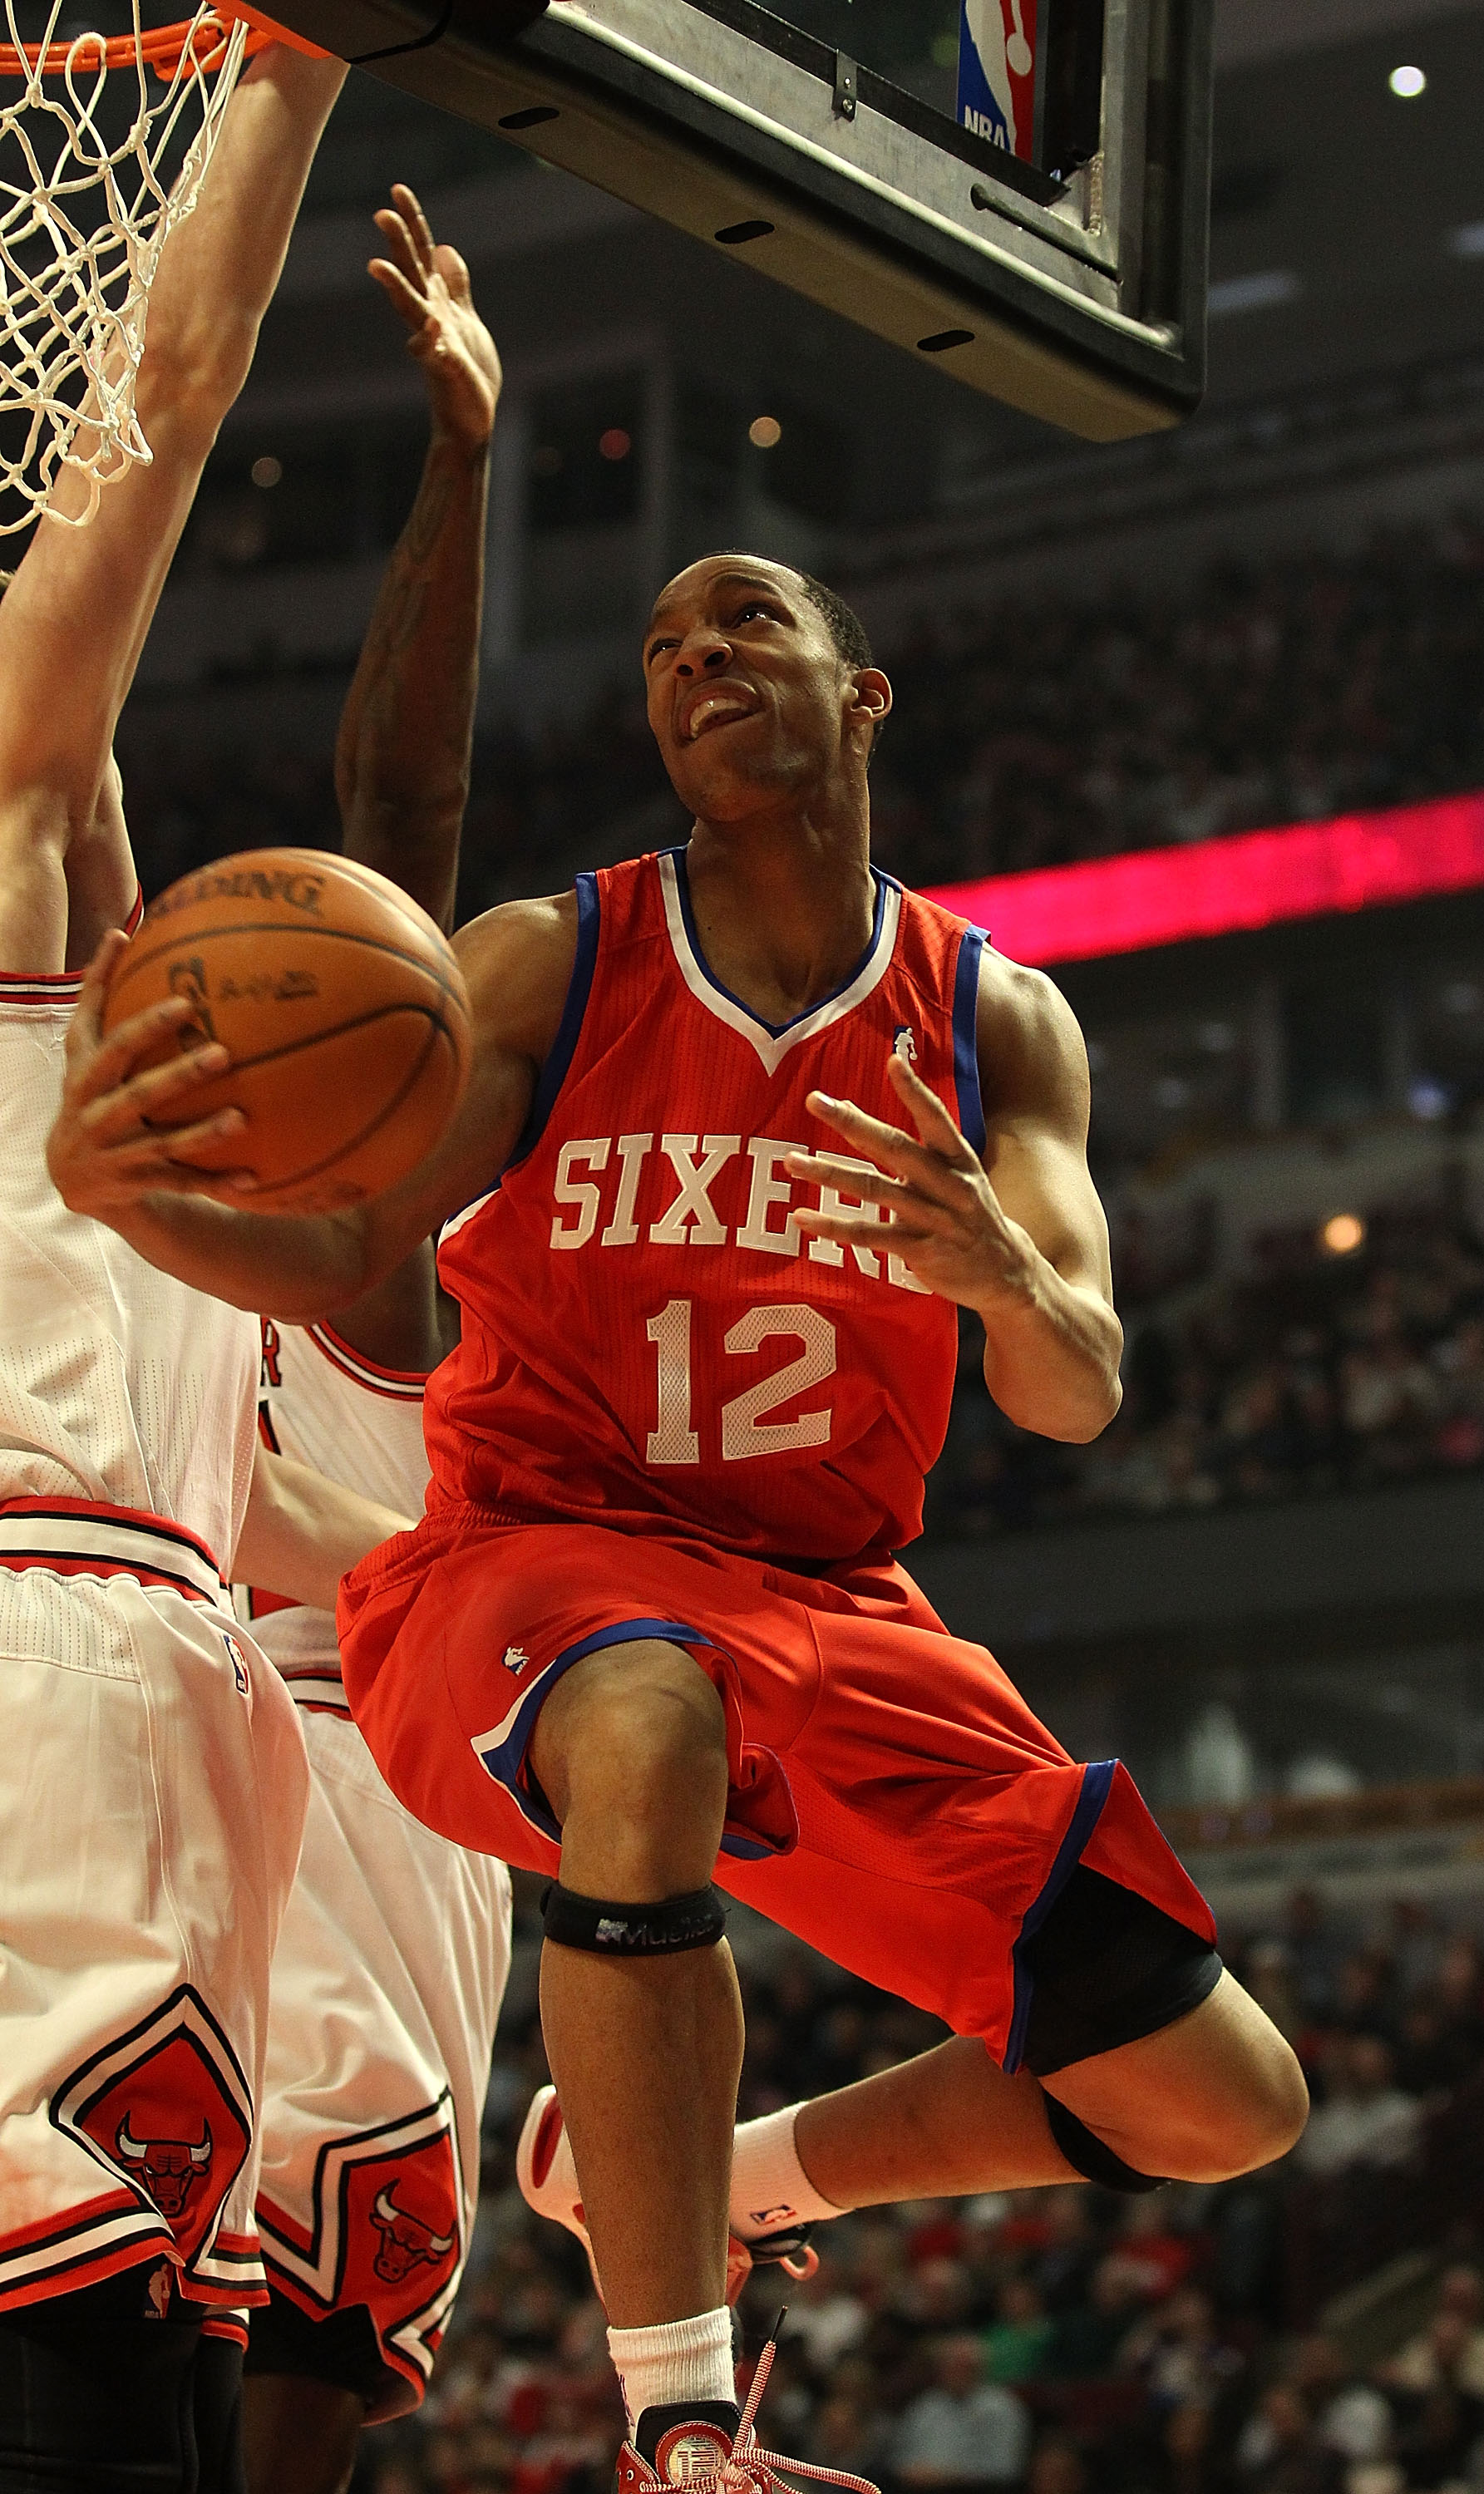 CHICAGO, IL - DECEMBER 21: Evan Turner #12 of the Philadelphia 76ers puts up a shot against the Chicago Bulls at the United Center on December 21, 2010 in Chicago, Illinois. NOTE TO USER: User expressly acknowledges and agrees that, by downloading and/or